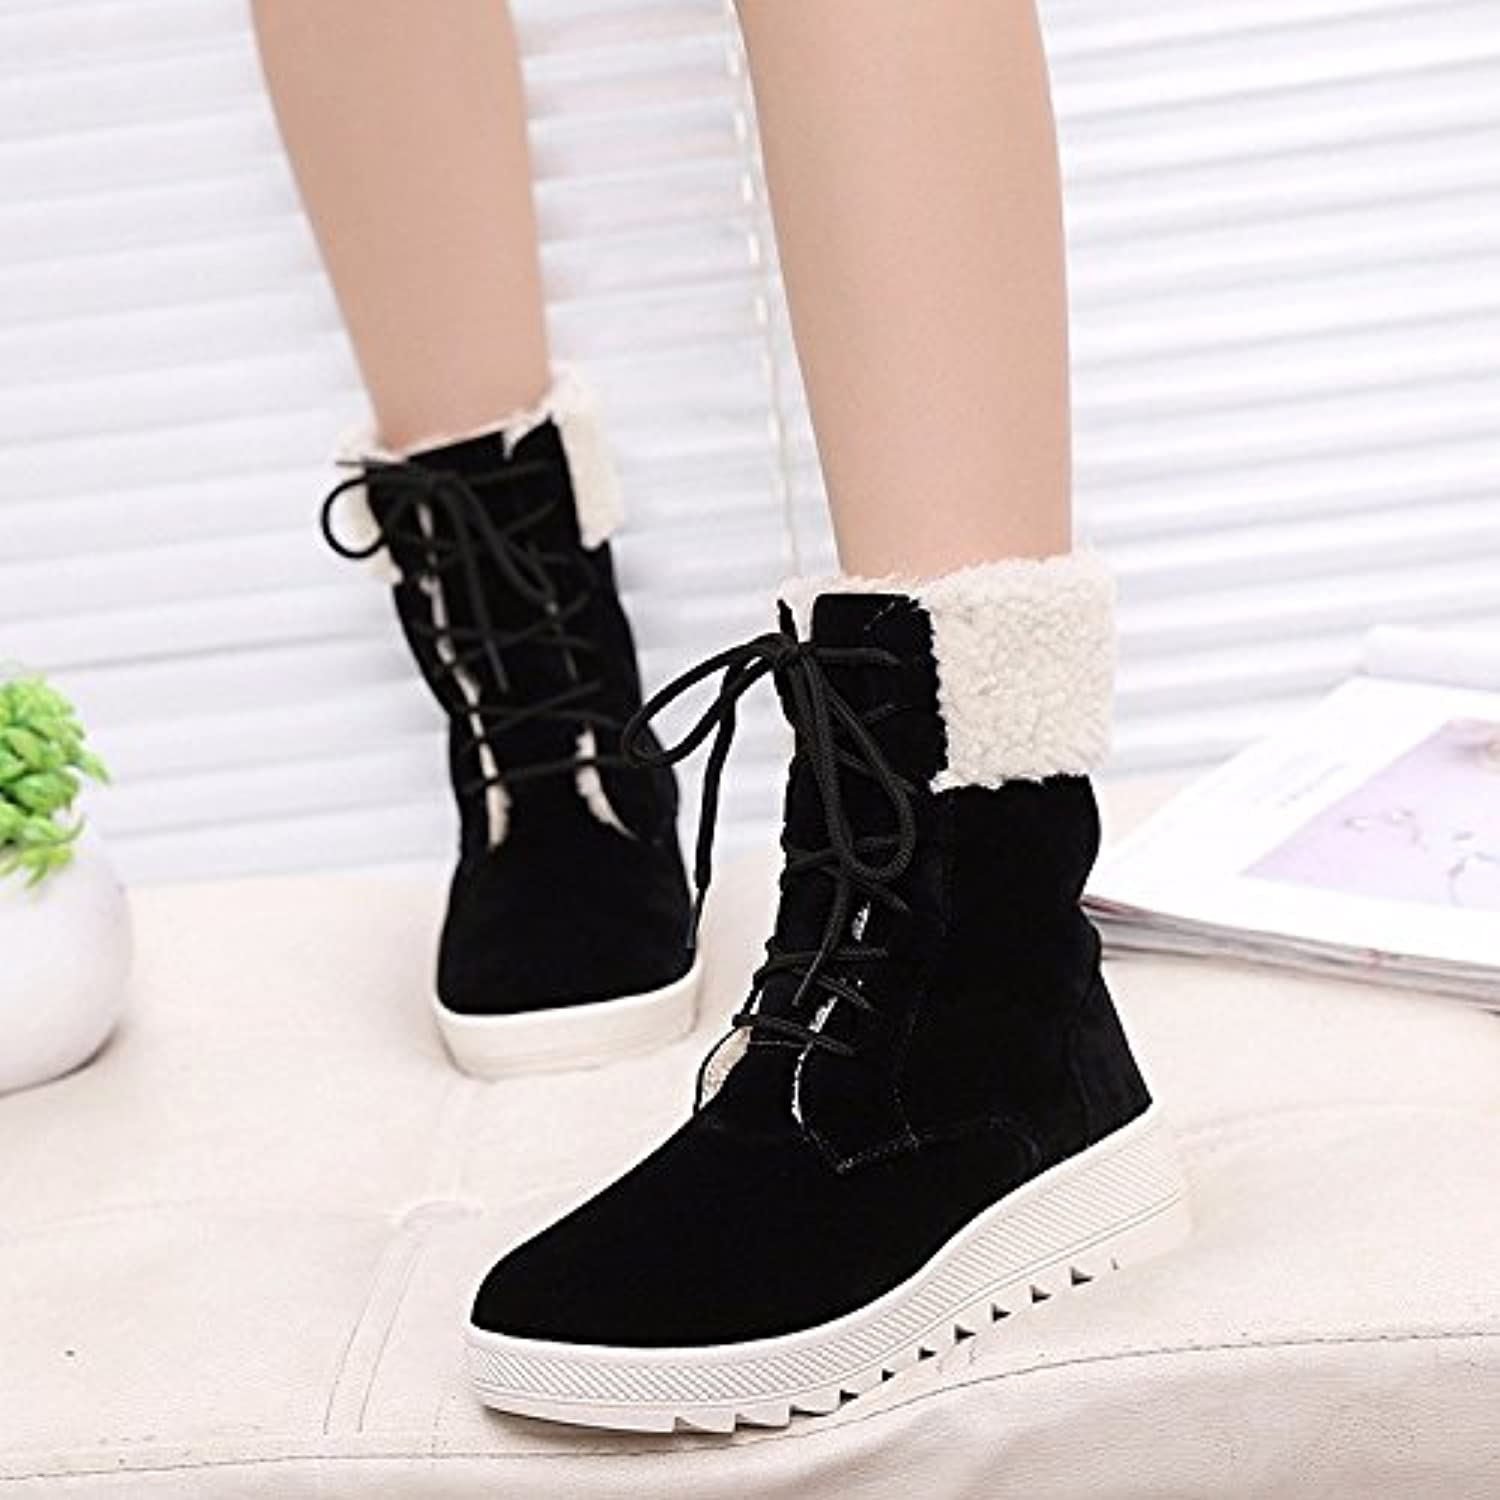 WYMBS Women's shoes Low Tube Solid color Scrub Tie Round Head Snow Boots